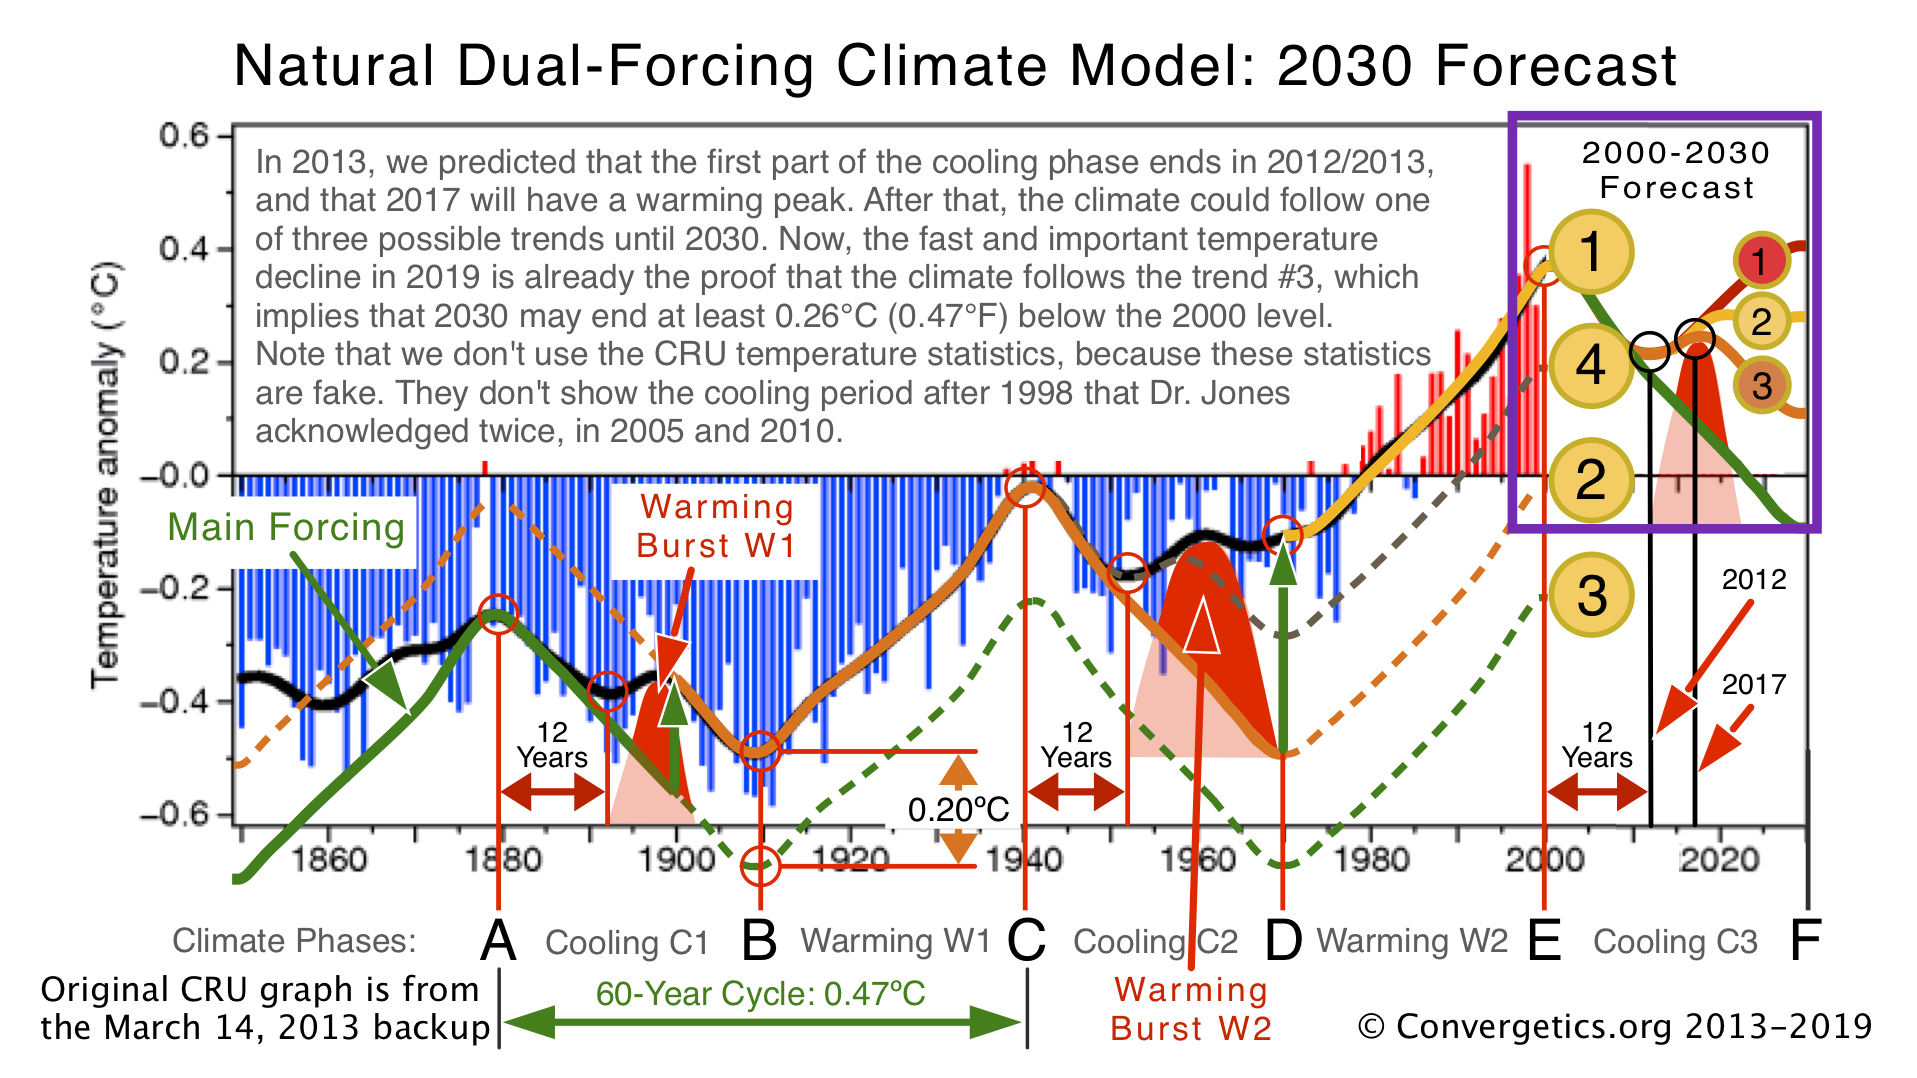 In 2013, a Climate Model Predicted the 2020 Cold Weather and Forecasted 2030 0.26°C (0.47°F) Below 2000